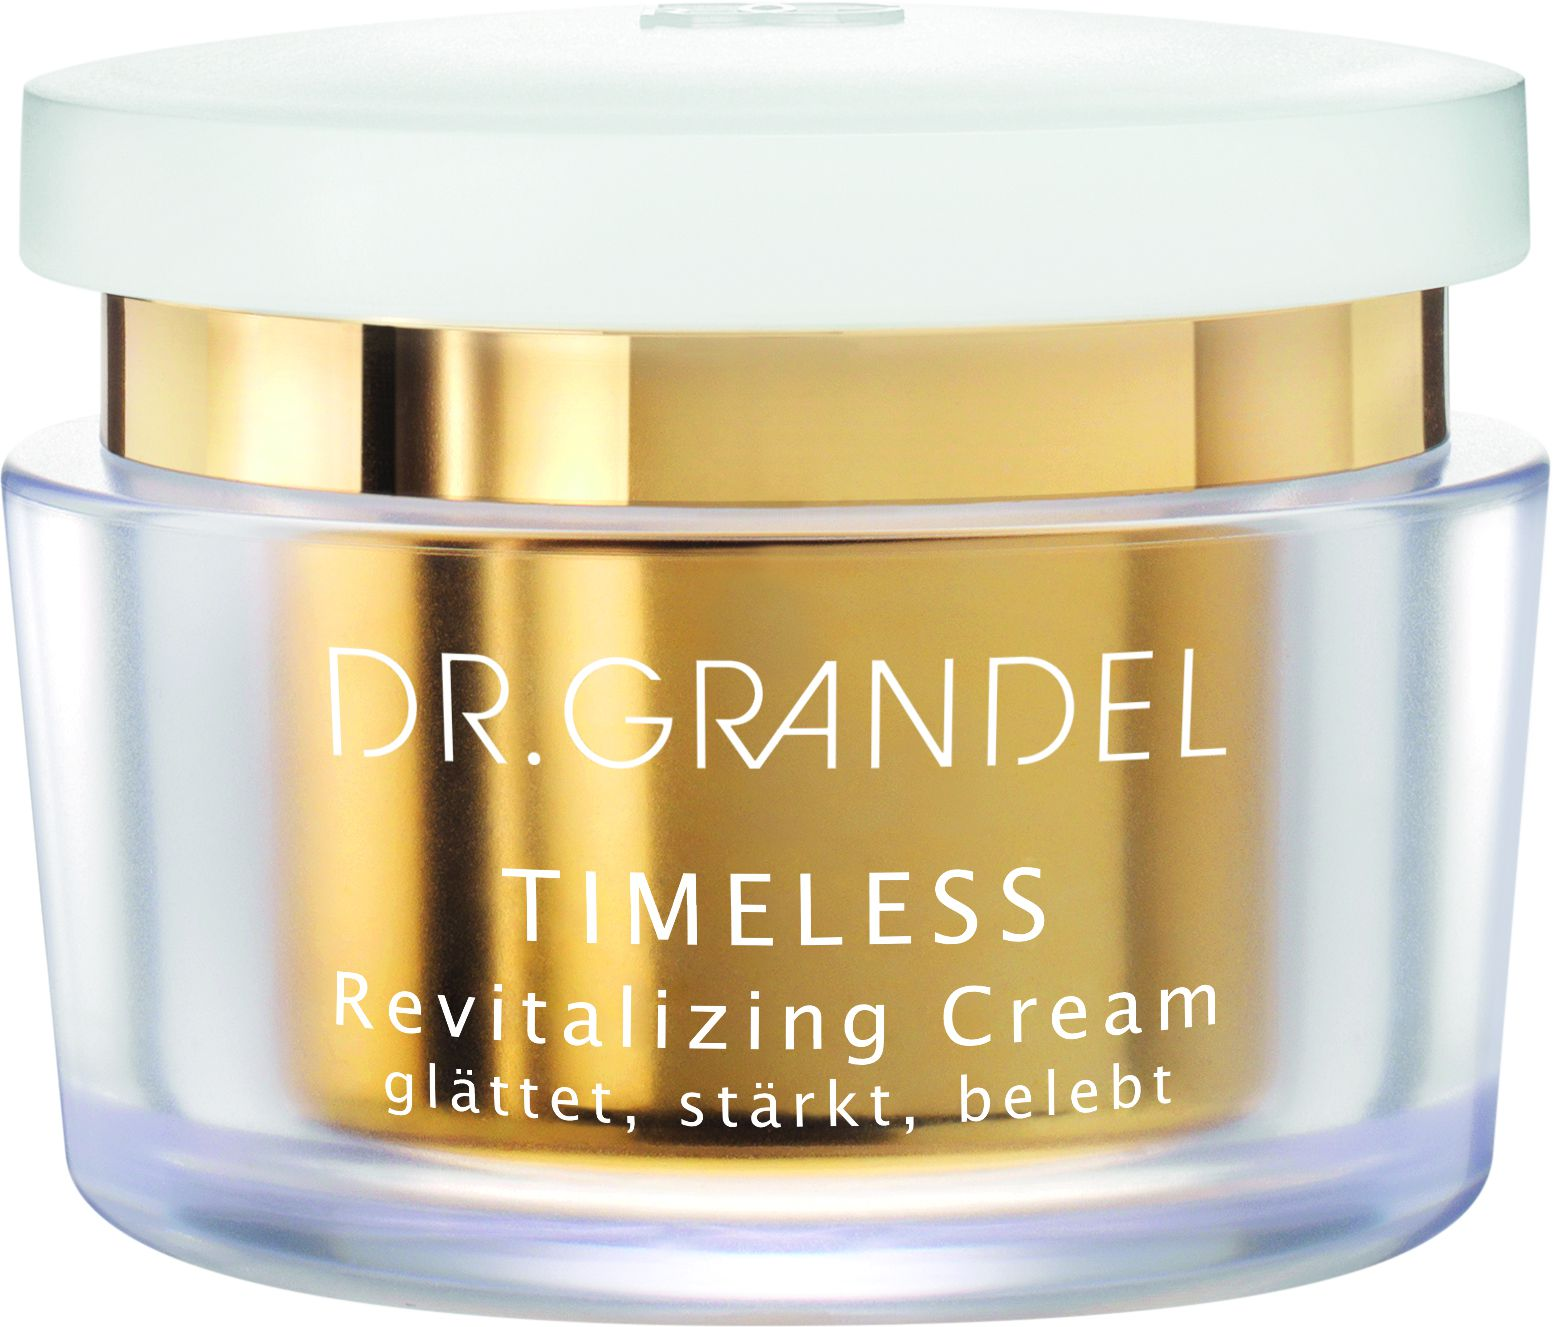 GRANDEL Timeless Revitalizing Cream